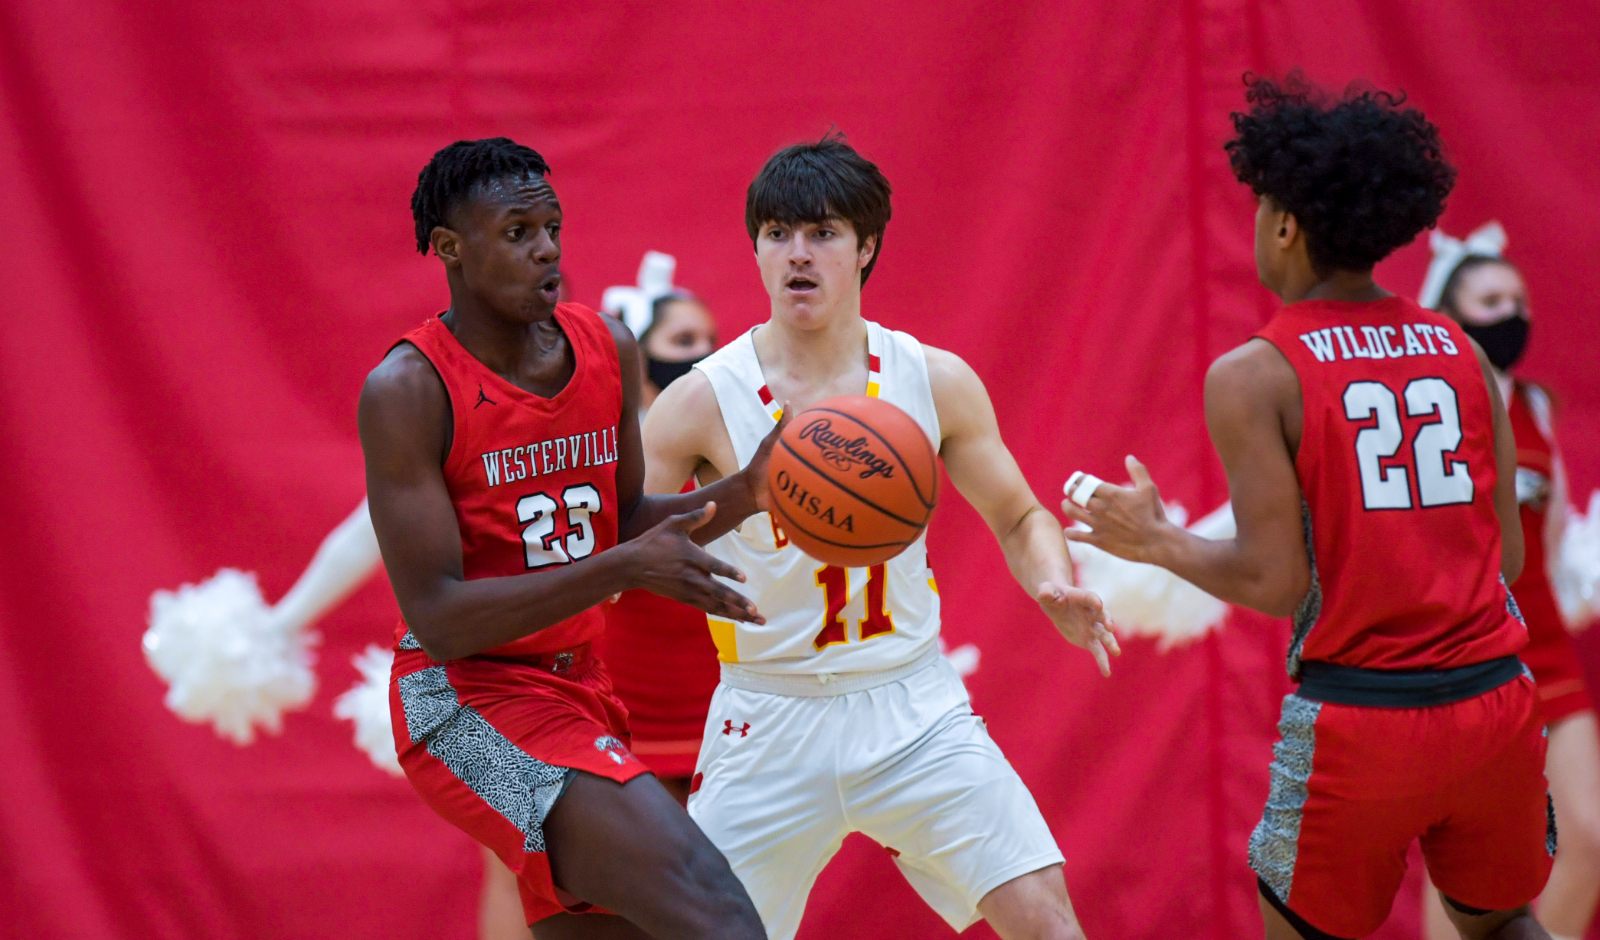 PHOTO GALLERY: Big Walnut falls to Westerville South 52-49